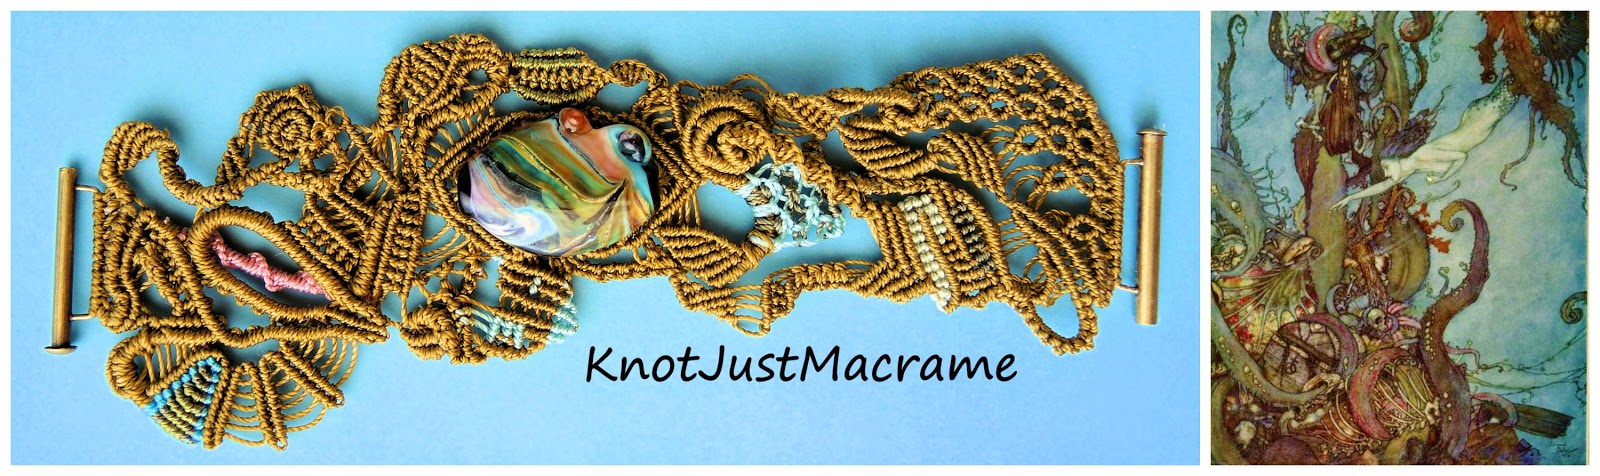 Macrame cuff inspired by The Little Mermaid by Edward Dulac.